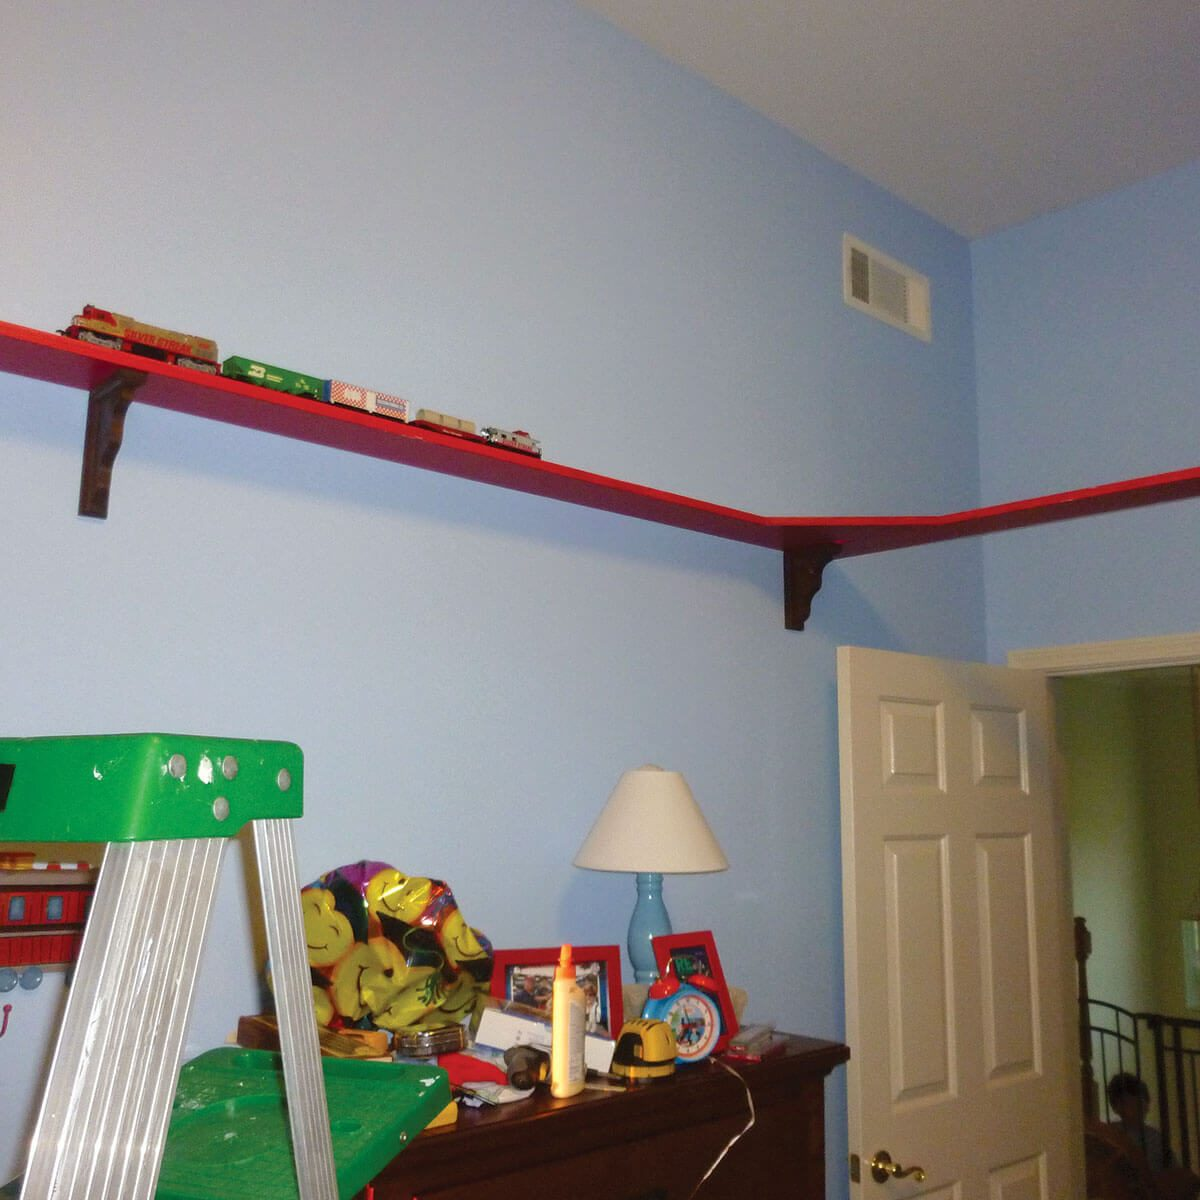 Building bedroom train track